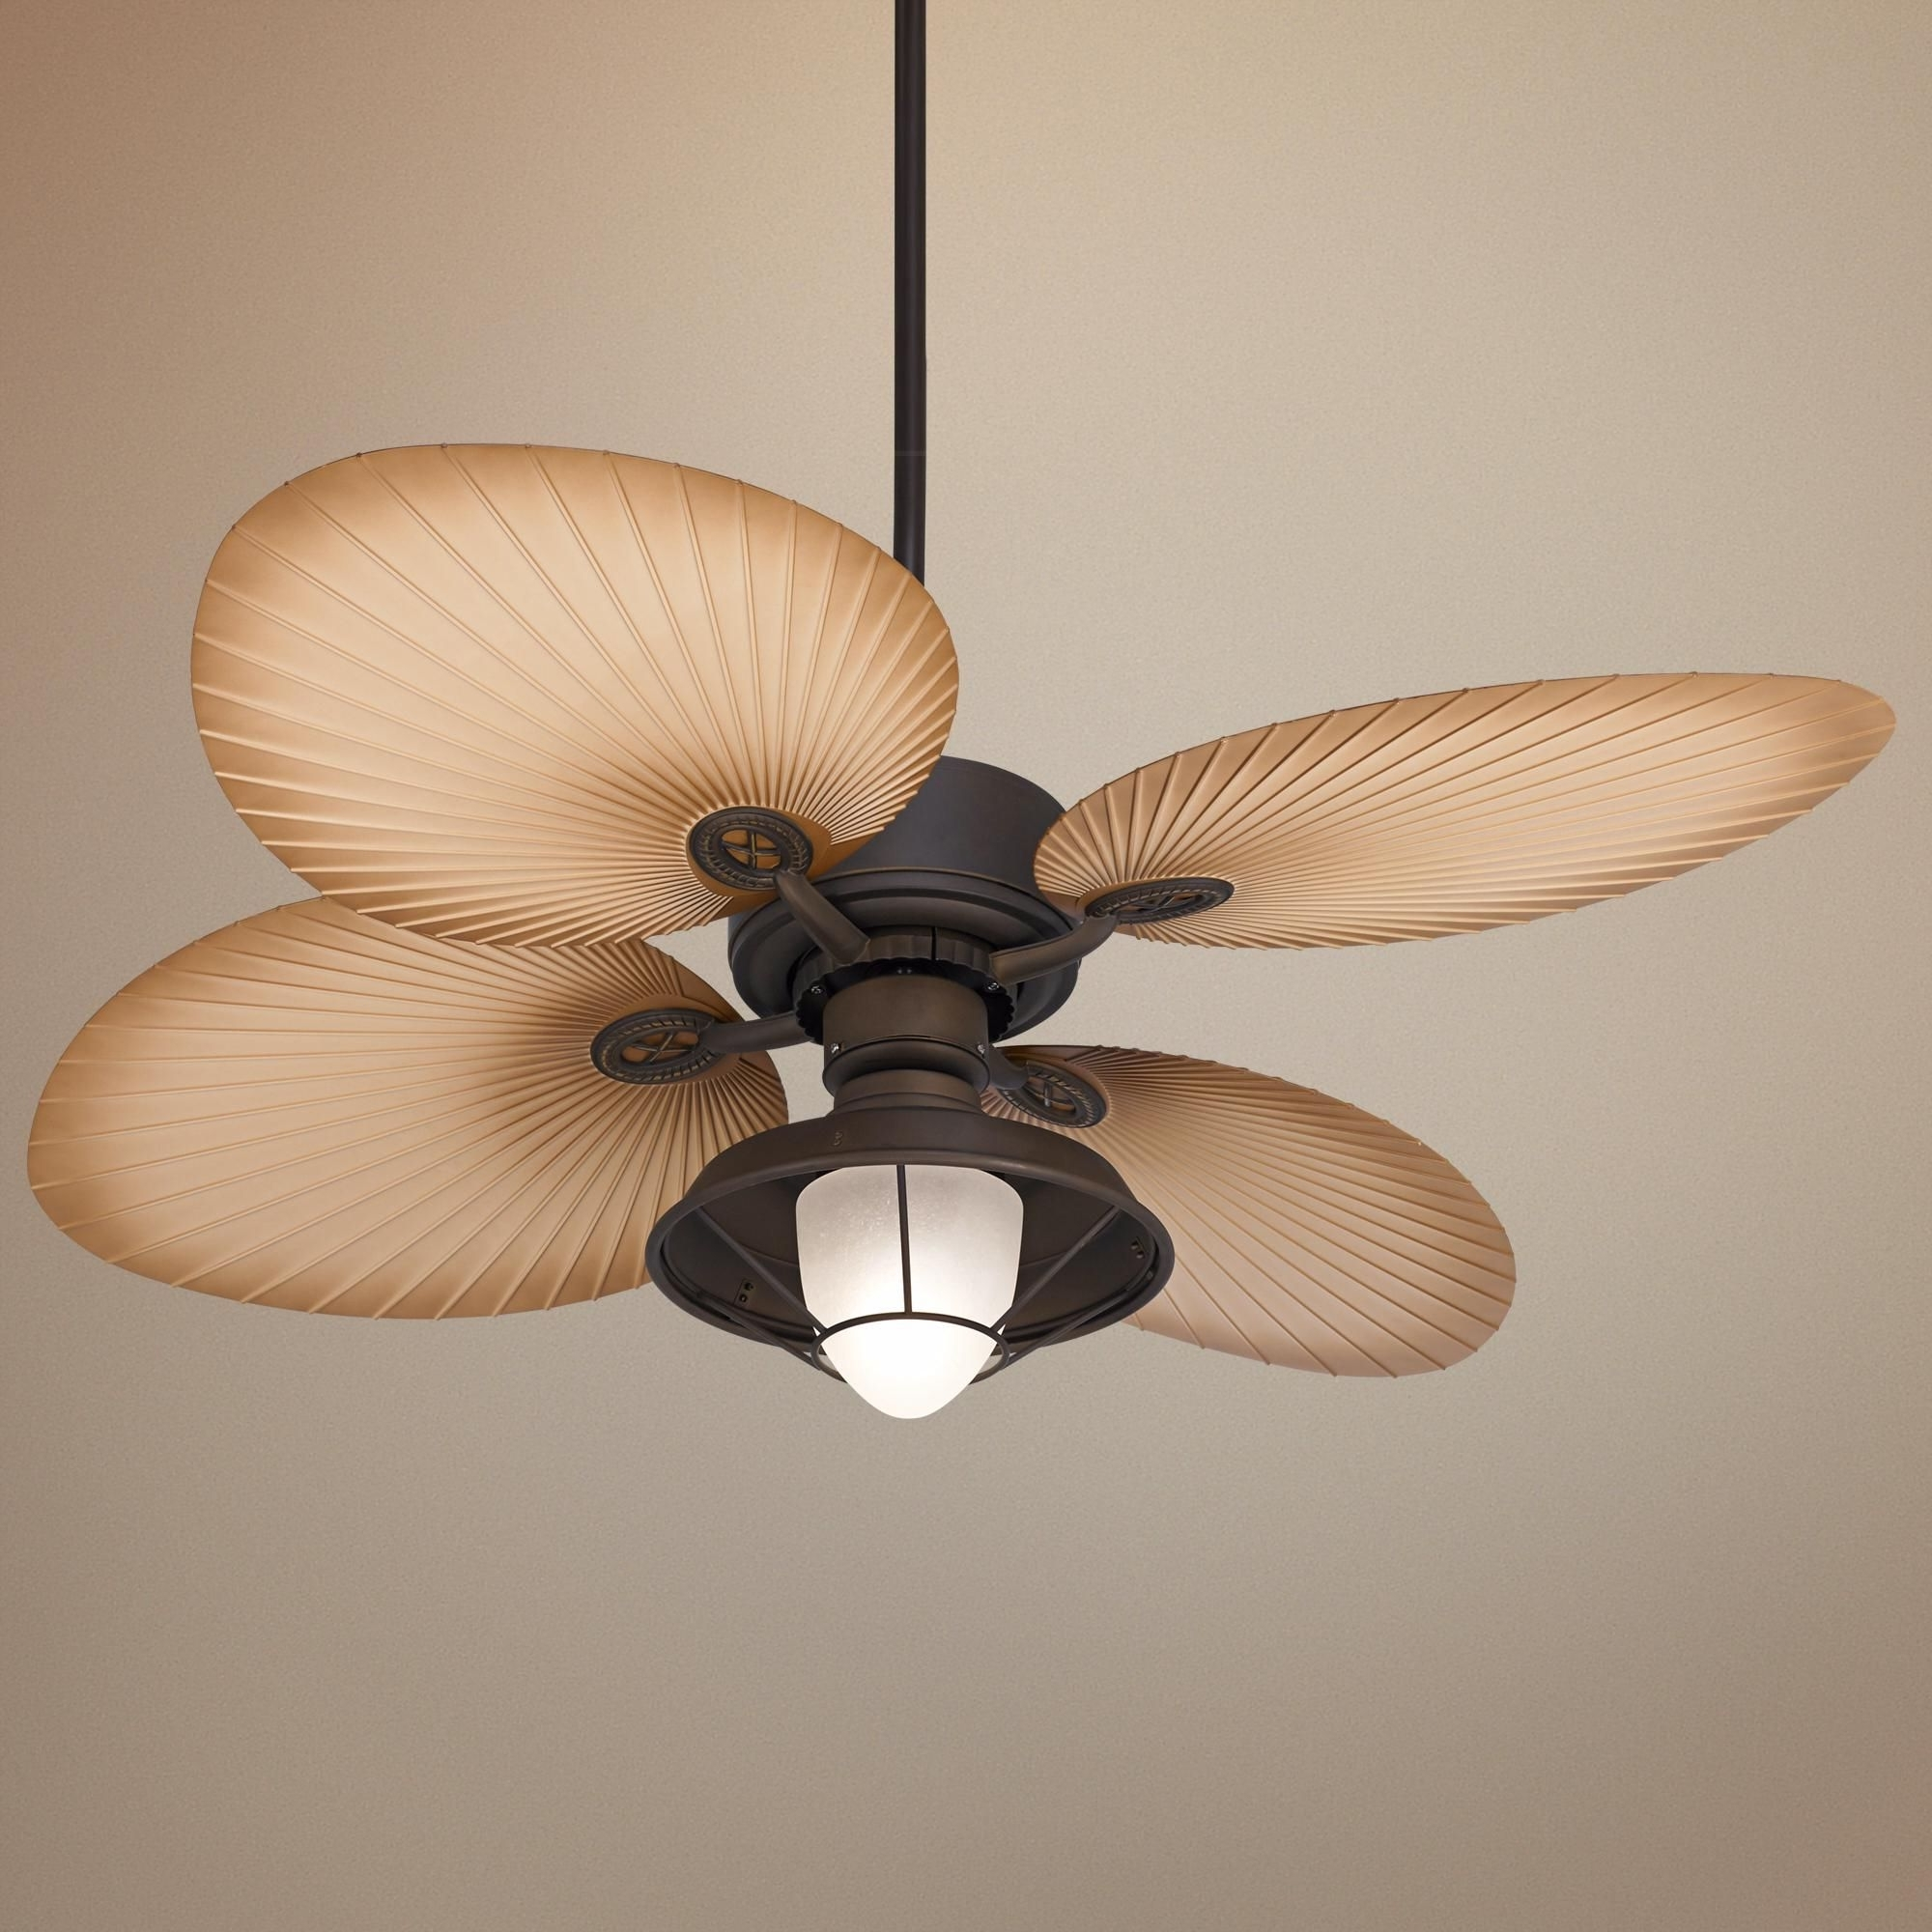 """52"""" Casa Vieja Aerostat Wide Palm Bronze Outdoor Ceiling Fan Intended For Most Current 72 Predator Bronze Outdoor Ceiling Fans With Light Kit (Gallery 16 of 20)"""